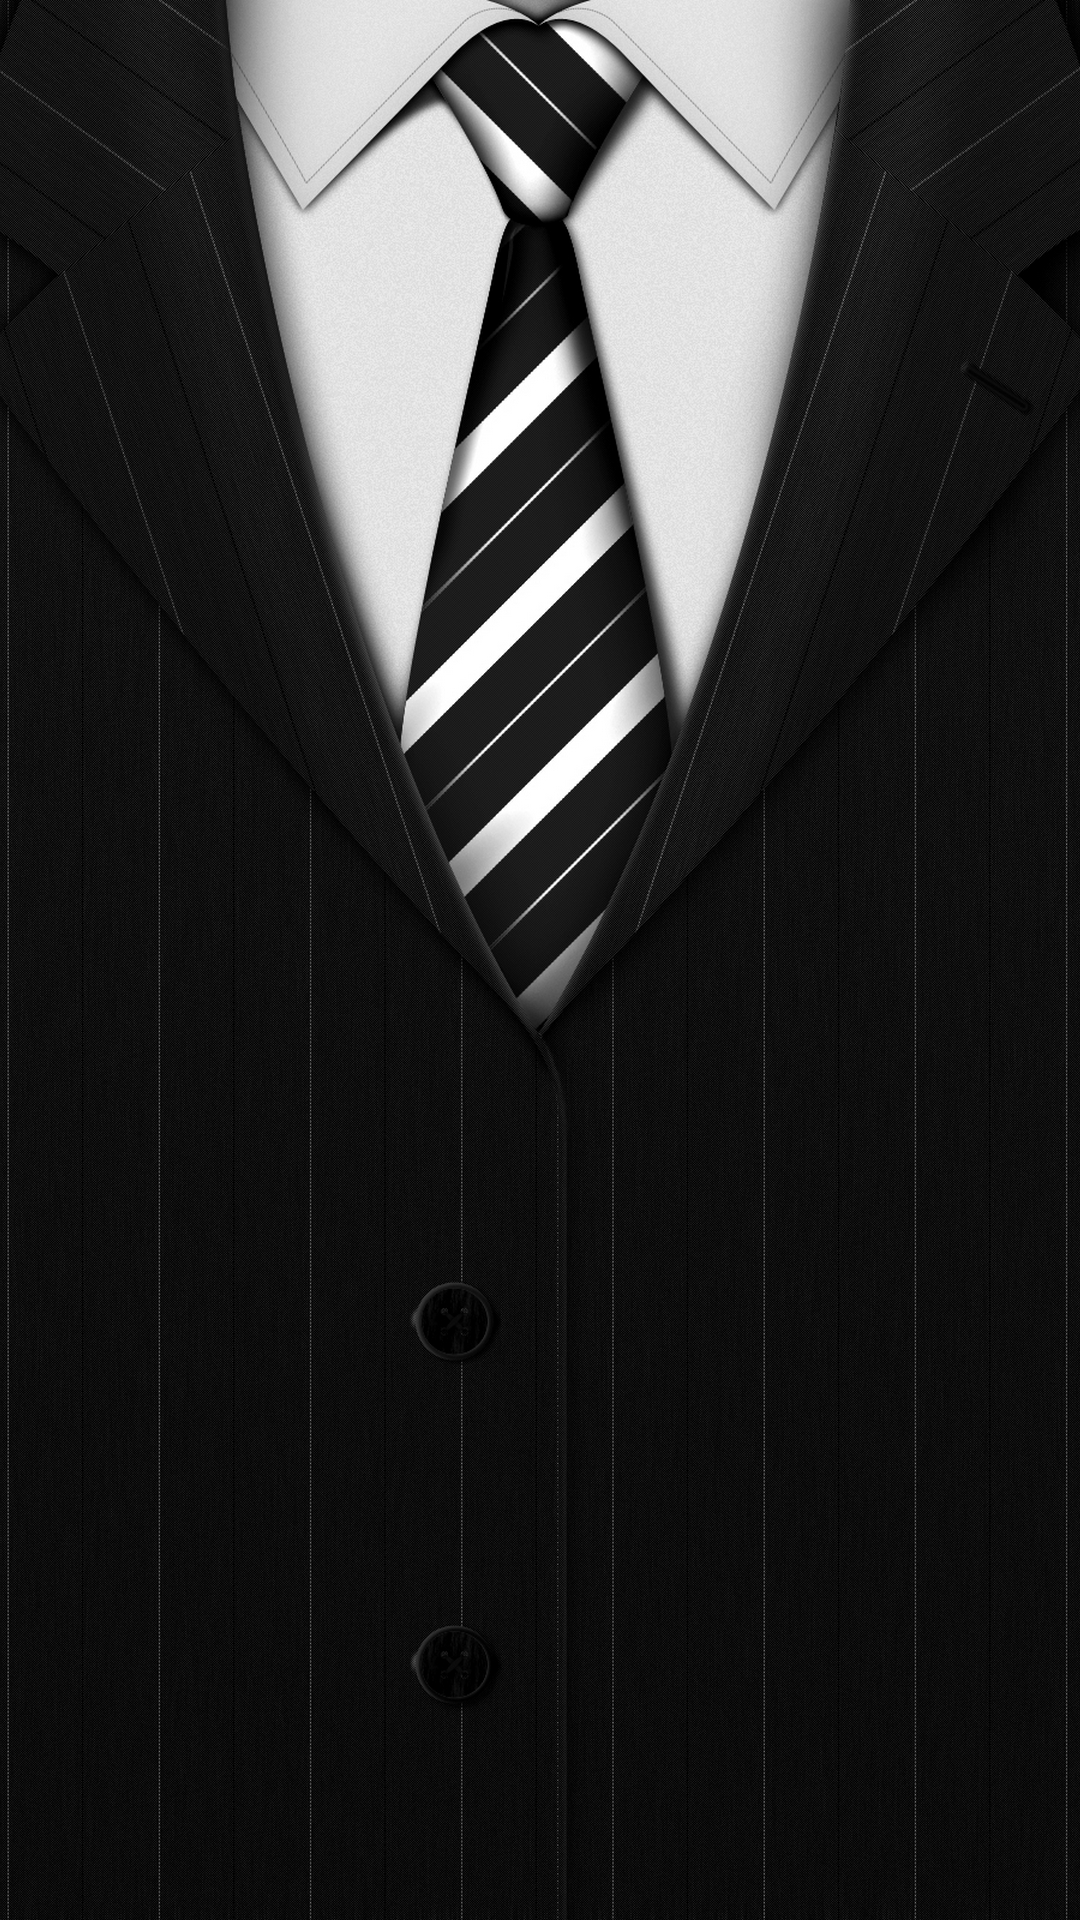 Suit htc one wallpaper